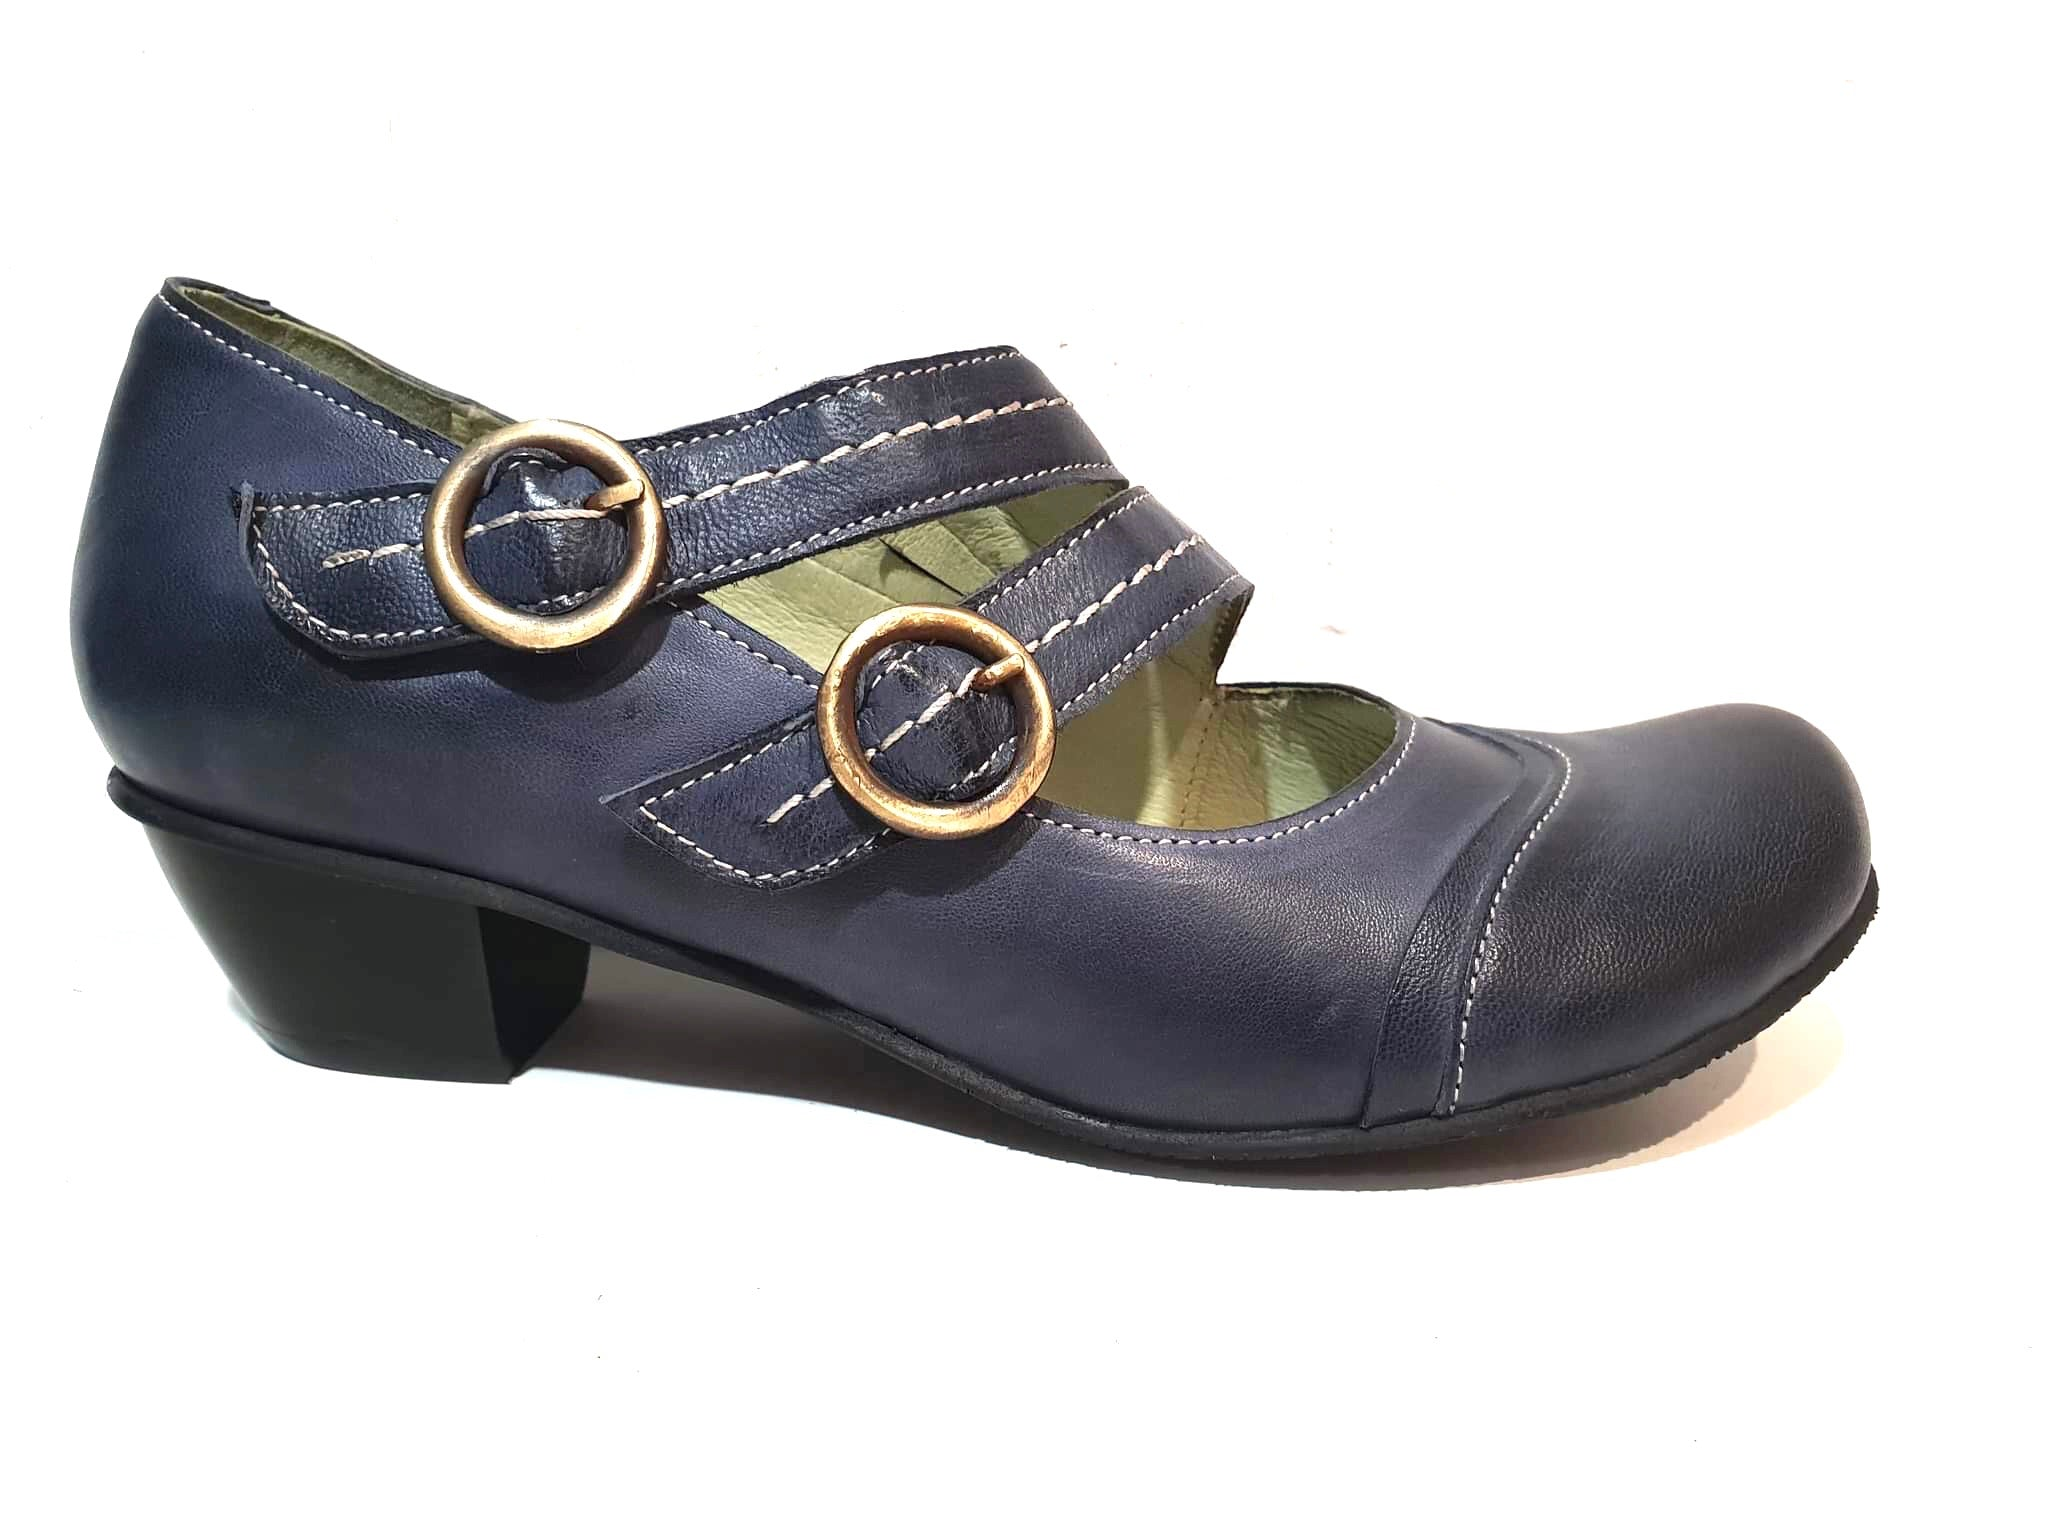 Mentha Alt Blue Leather Women's Court Shoes Mary Jane Double Buckle Velcro Made In Portugal